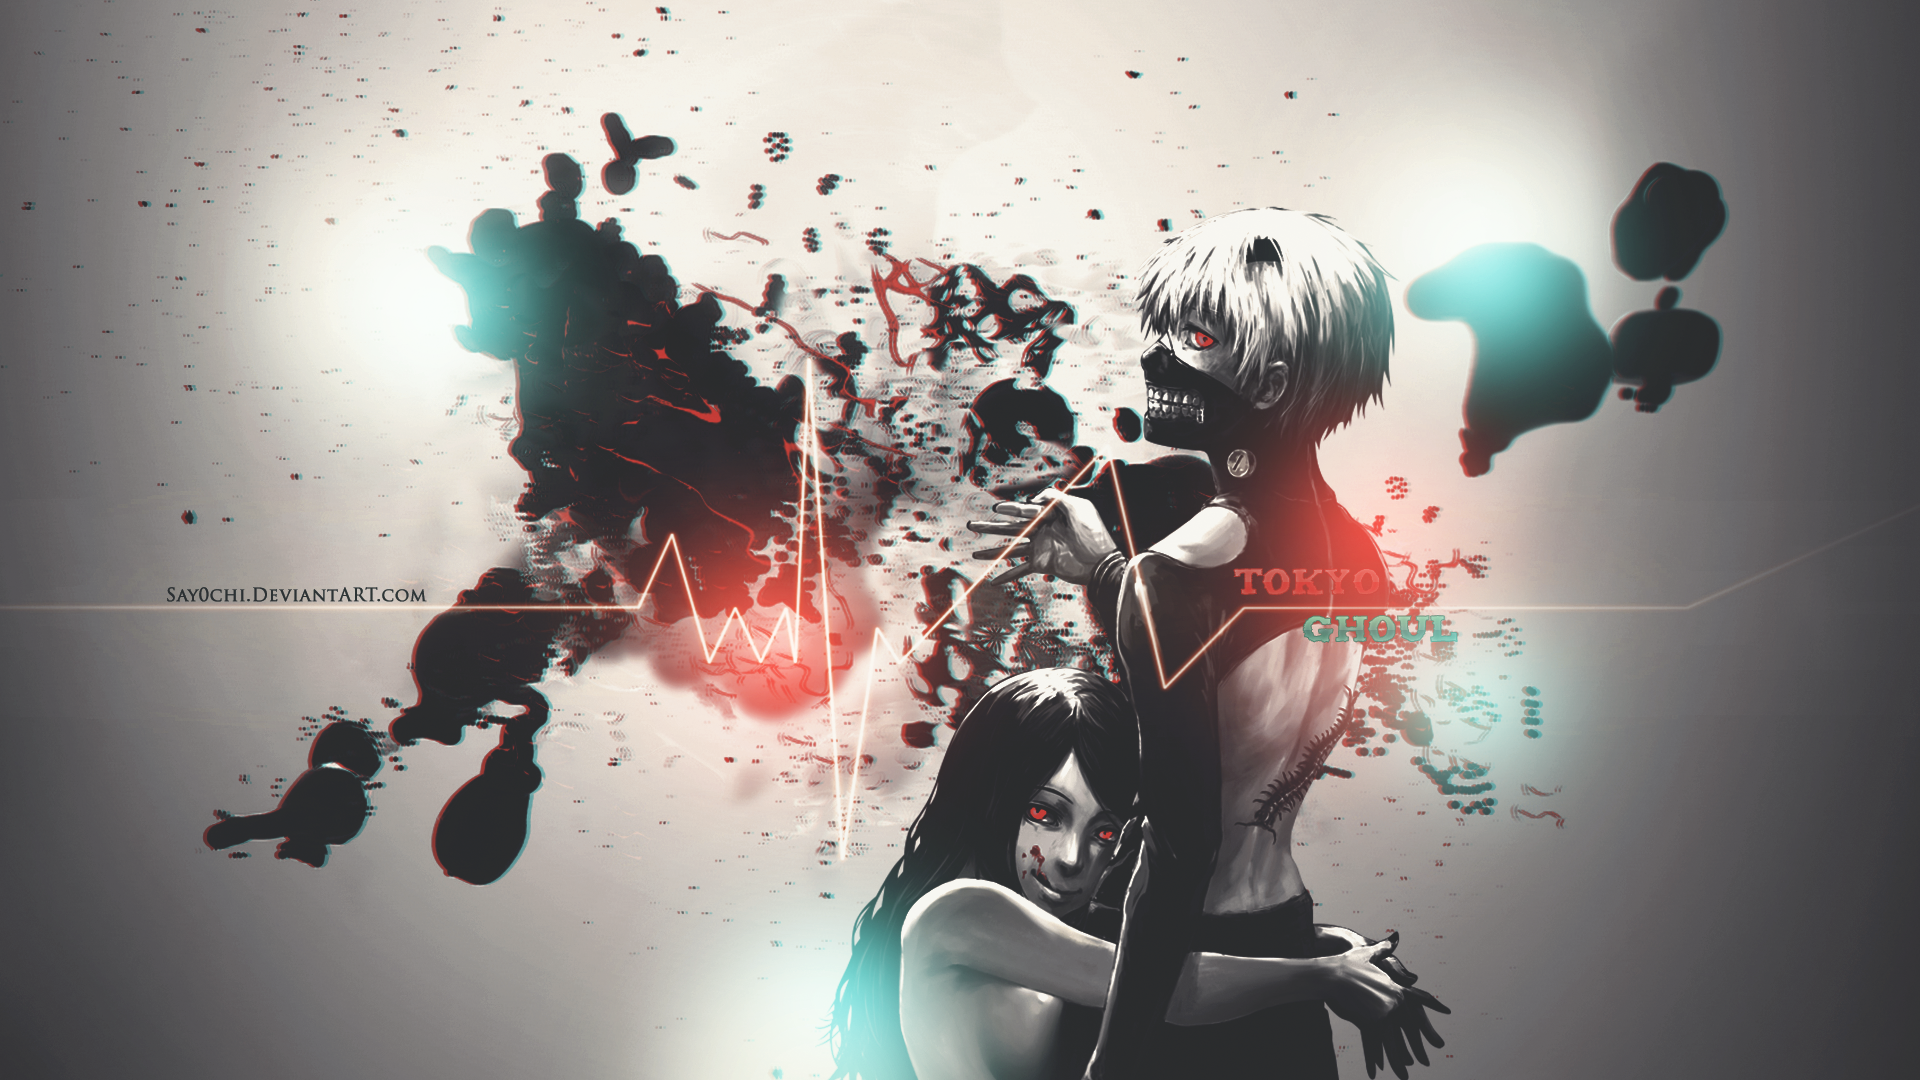 tokyo ghoul clipart 1920x1080